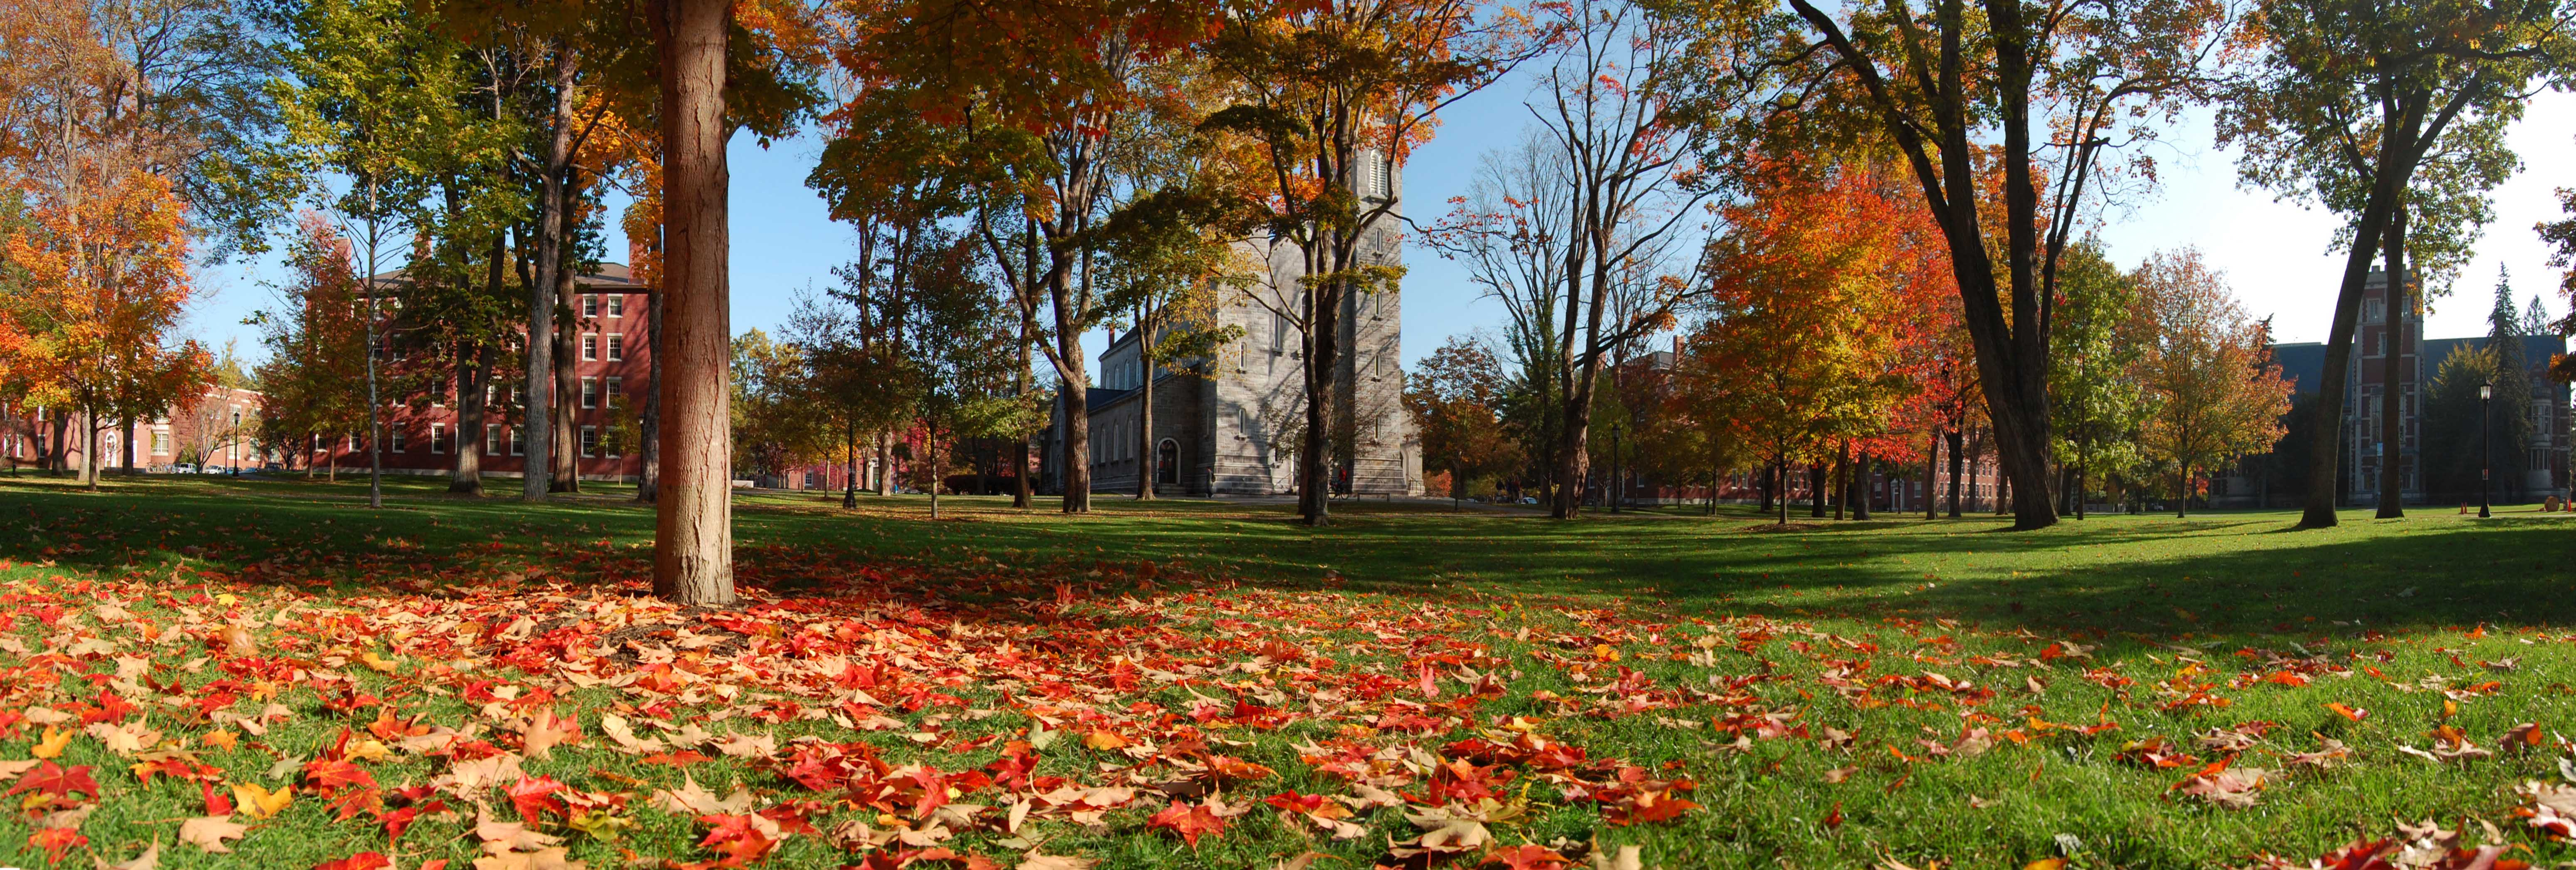 Bowdoin College Quad in the fall. Photo courtesy of Wikimedia Commons.